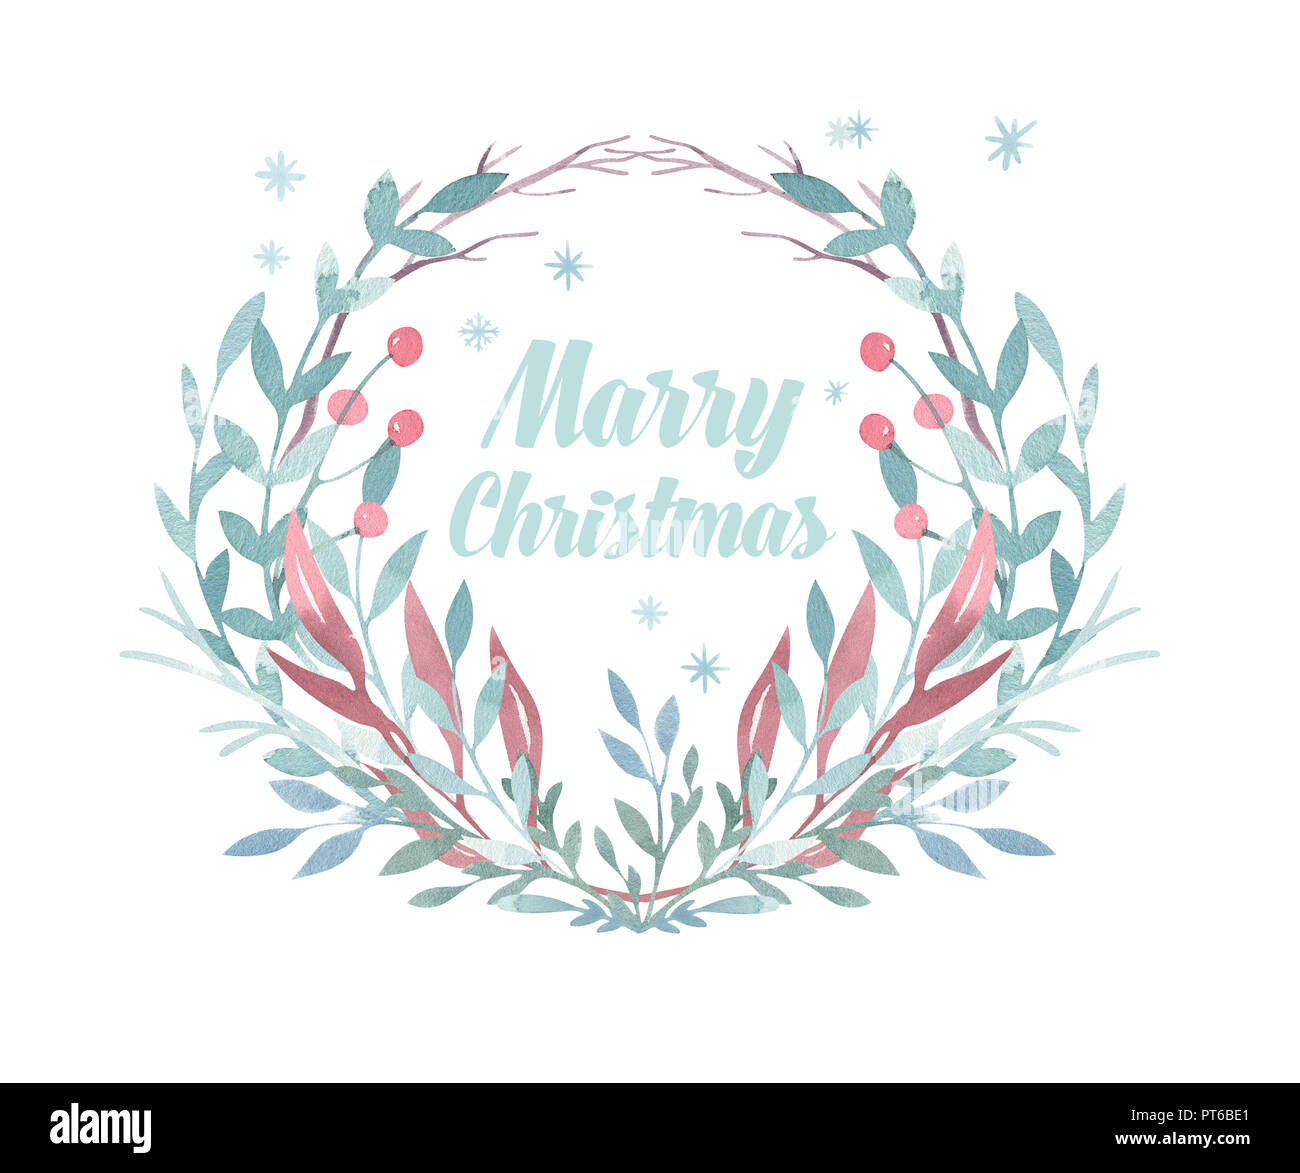 Christmas Wreath Card Winter Watercolor Painting Illustration Berry Wreath For Christmas Watercolor Holiday Frame Stock Photo Alamy